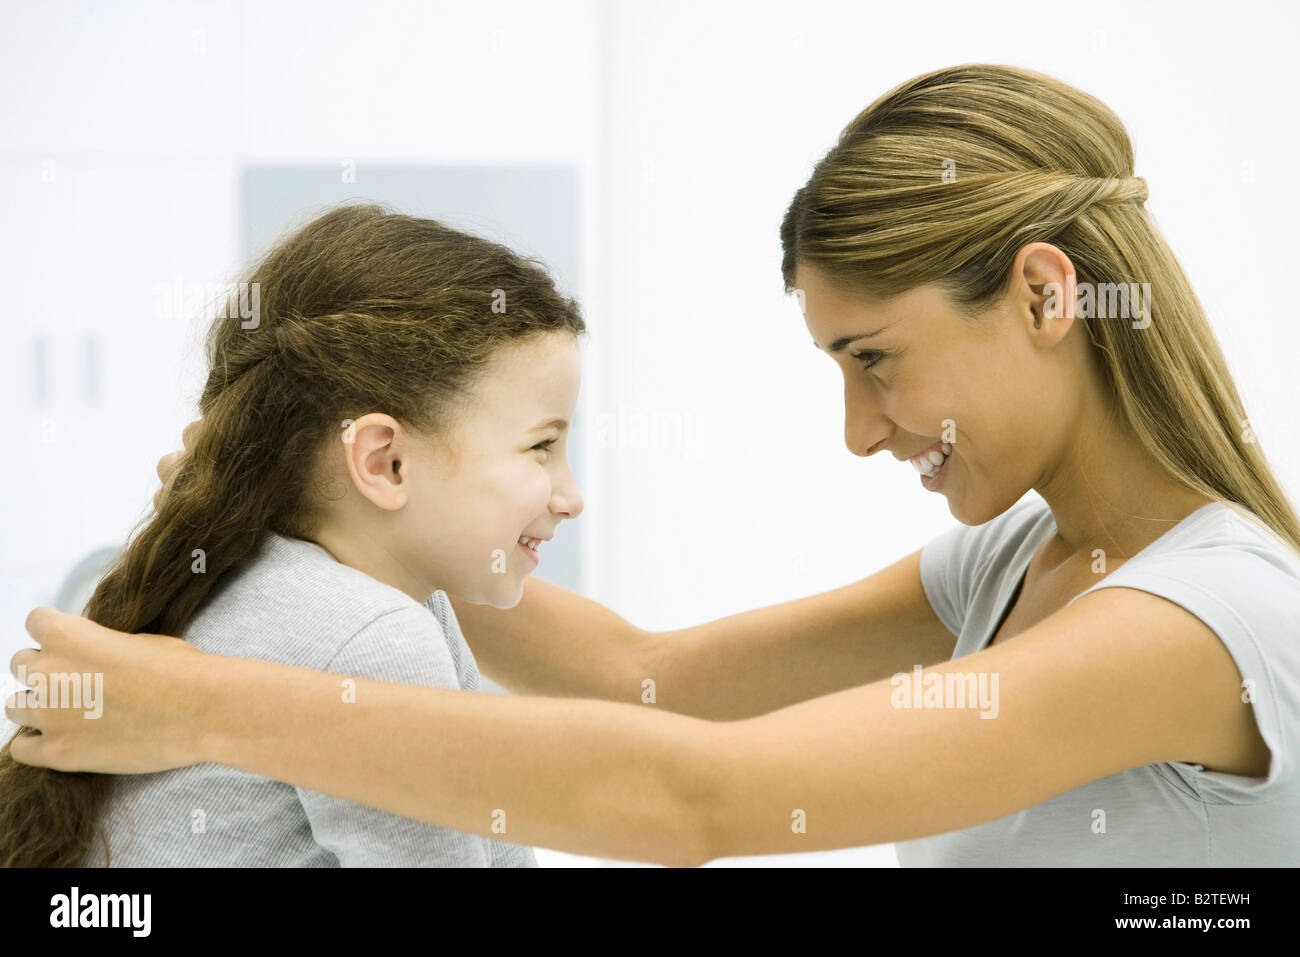 Mother and daughter face to face, smiling, woman touching girl's hair - Stock Image